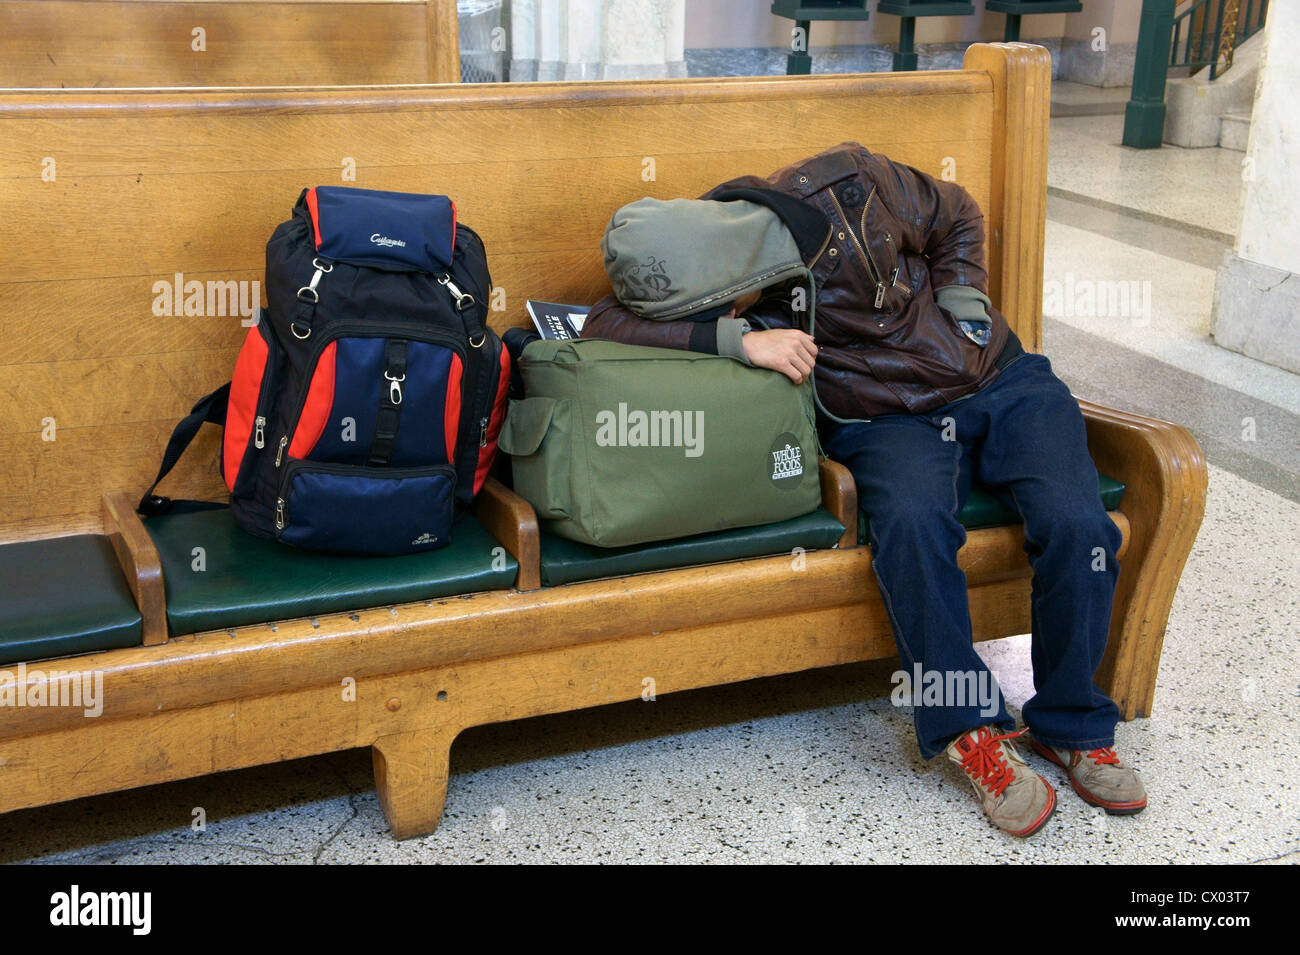 sleeping-male-traveler-taling-a-nap-on-a